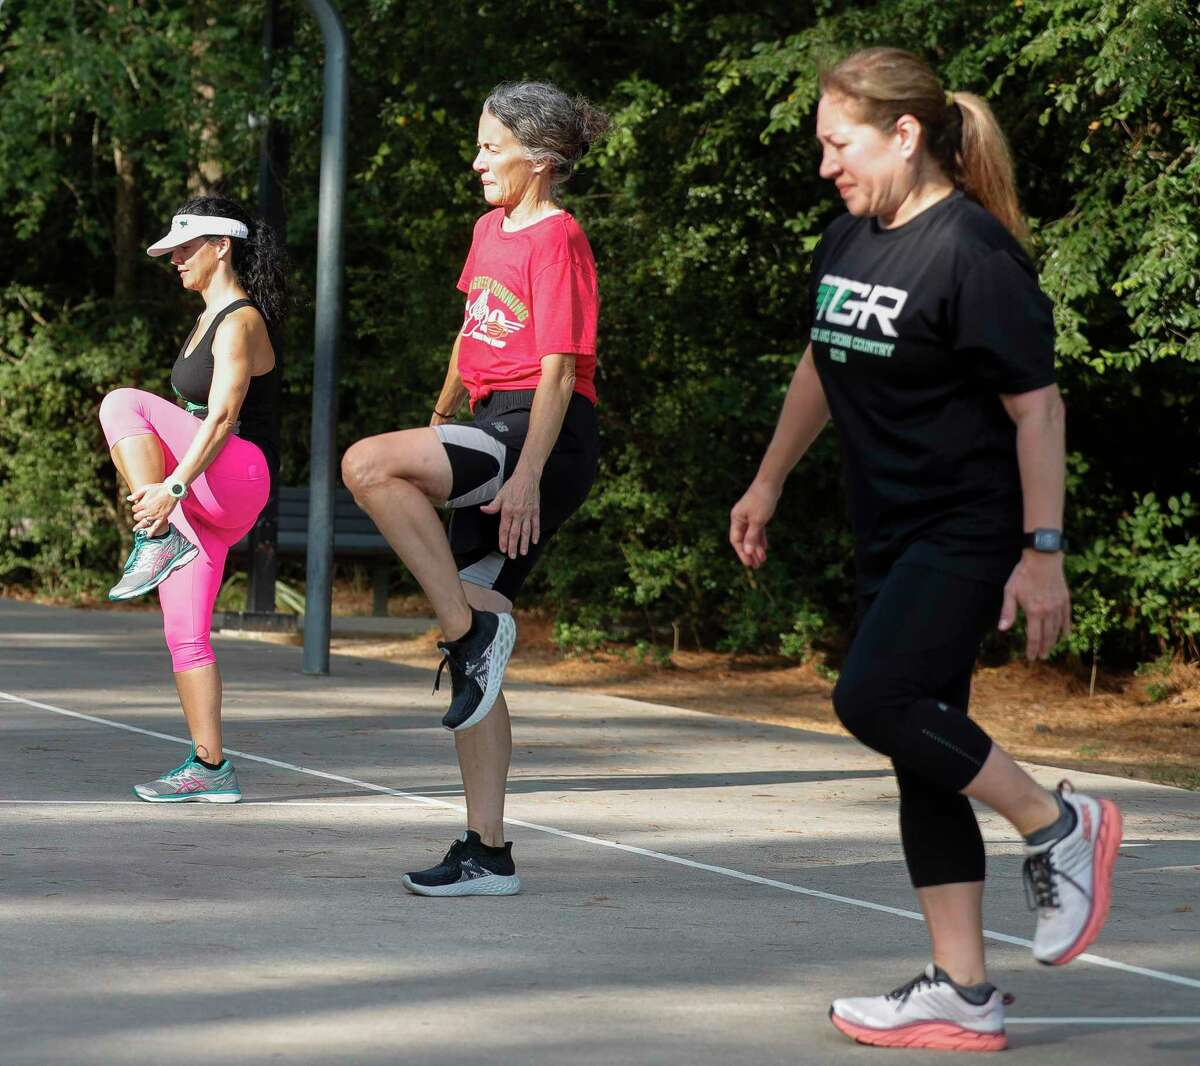 Team Green Running member Anne Marie Notargiacomo, far left, stretches beside Kimberly Dufford and Susan Soulant before taking part in a workout at Terramont Park, Tuesday, Aug. 4, 2020, in The Woodlands.